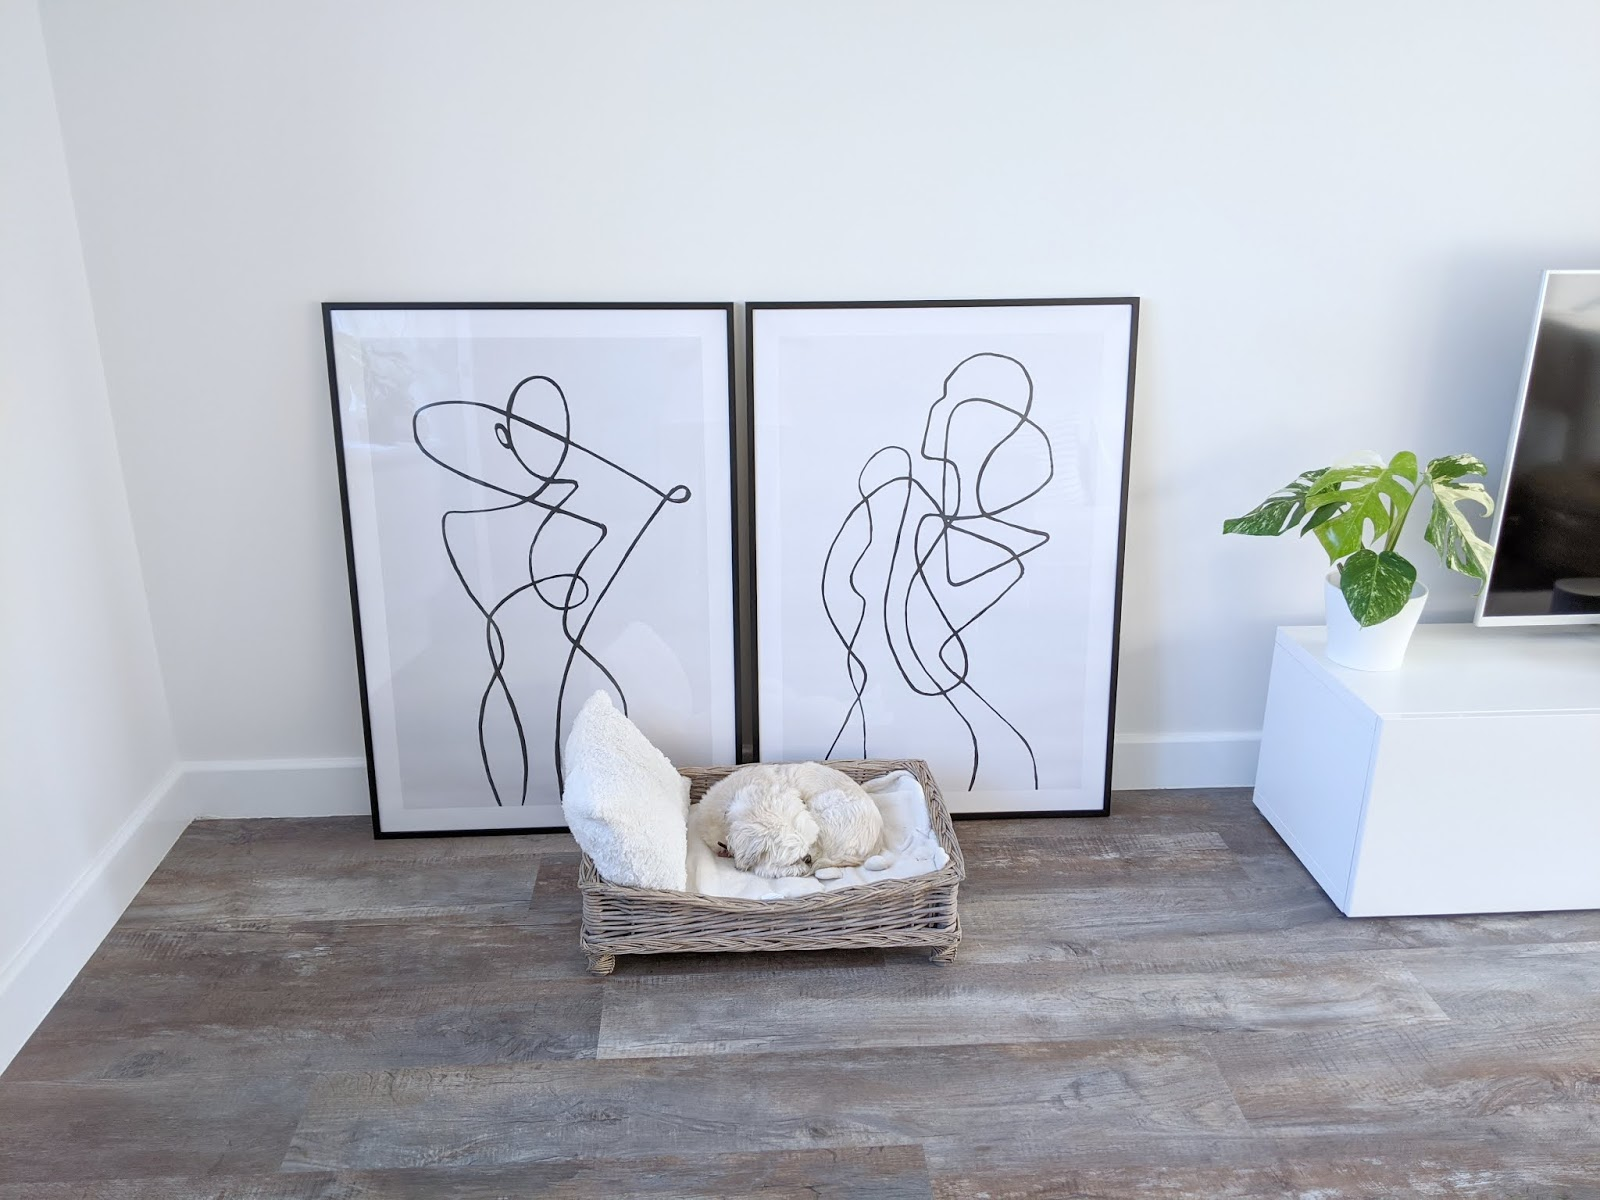 My Home Update - New Prints From Desino